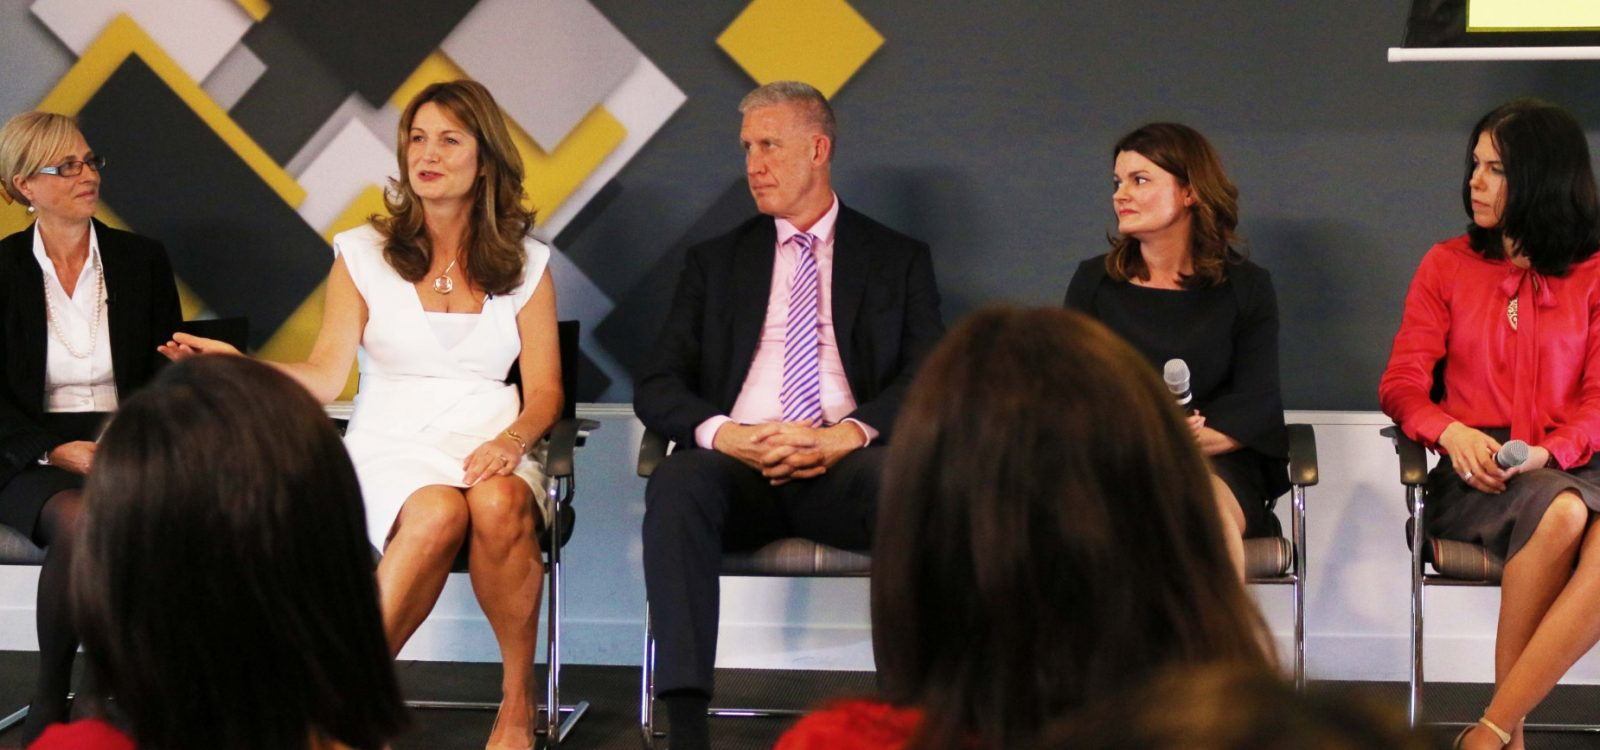 Actuary's book launches flexible work discussion